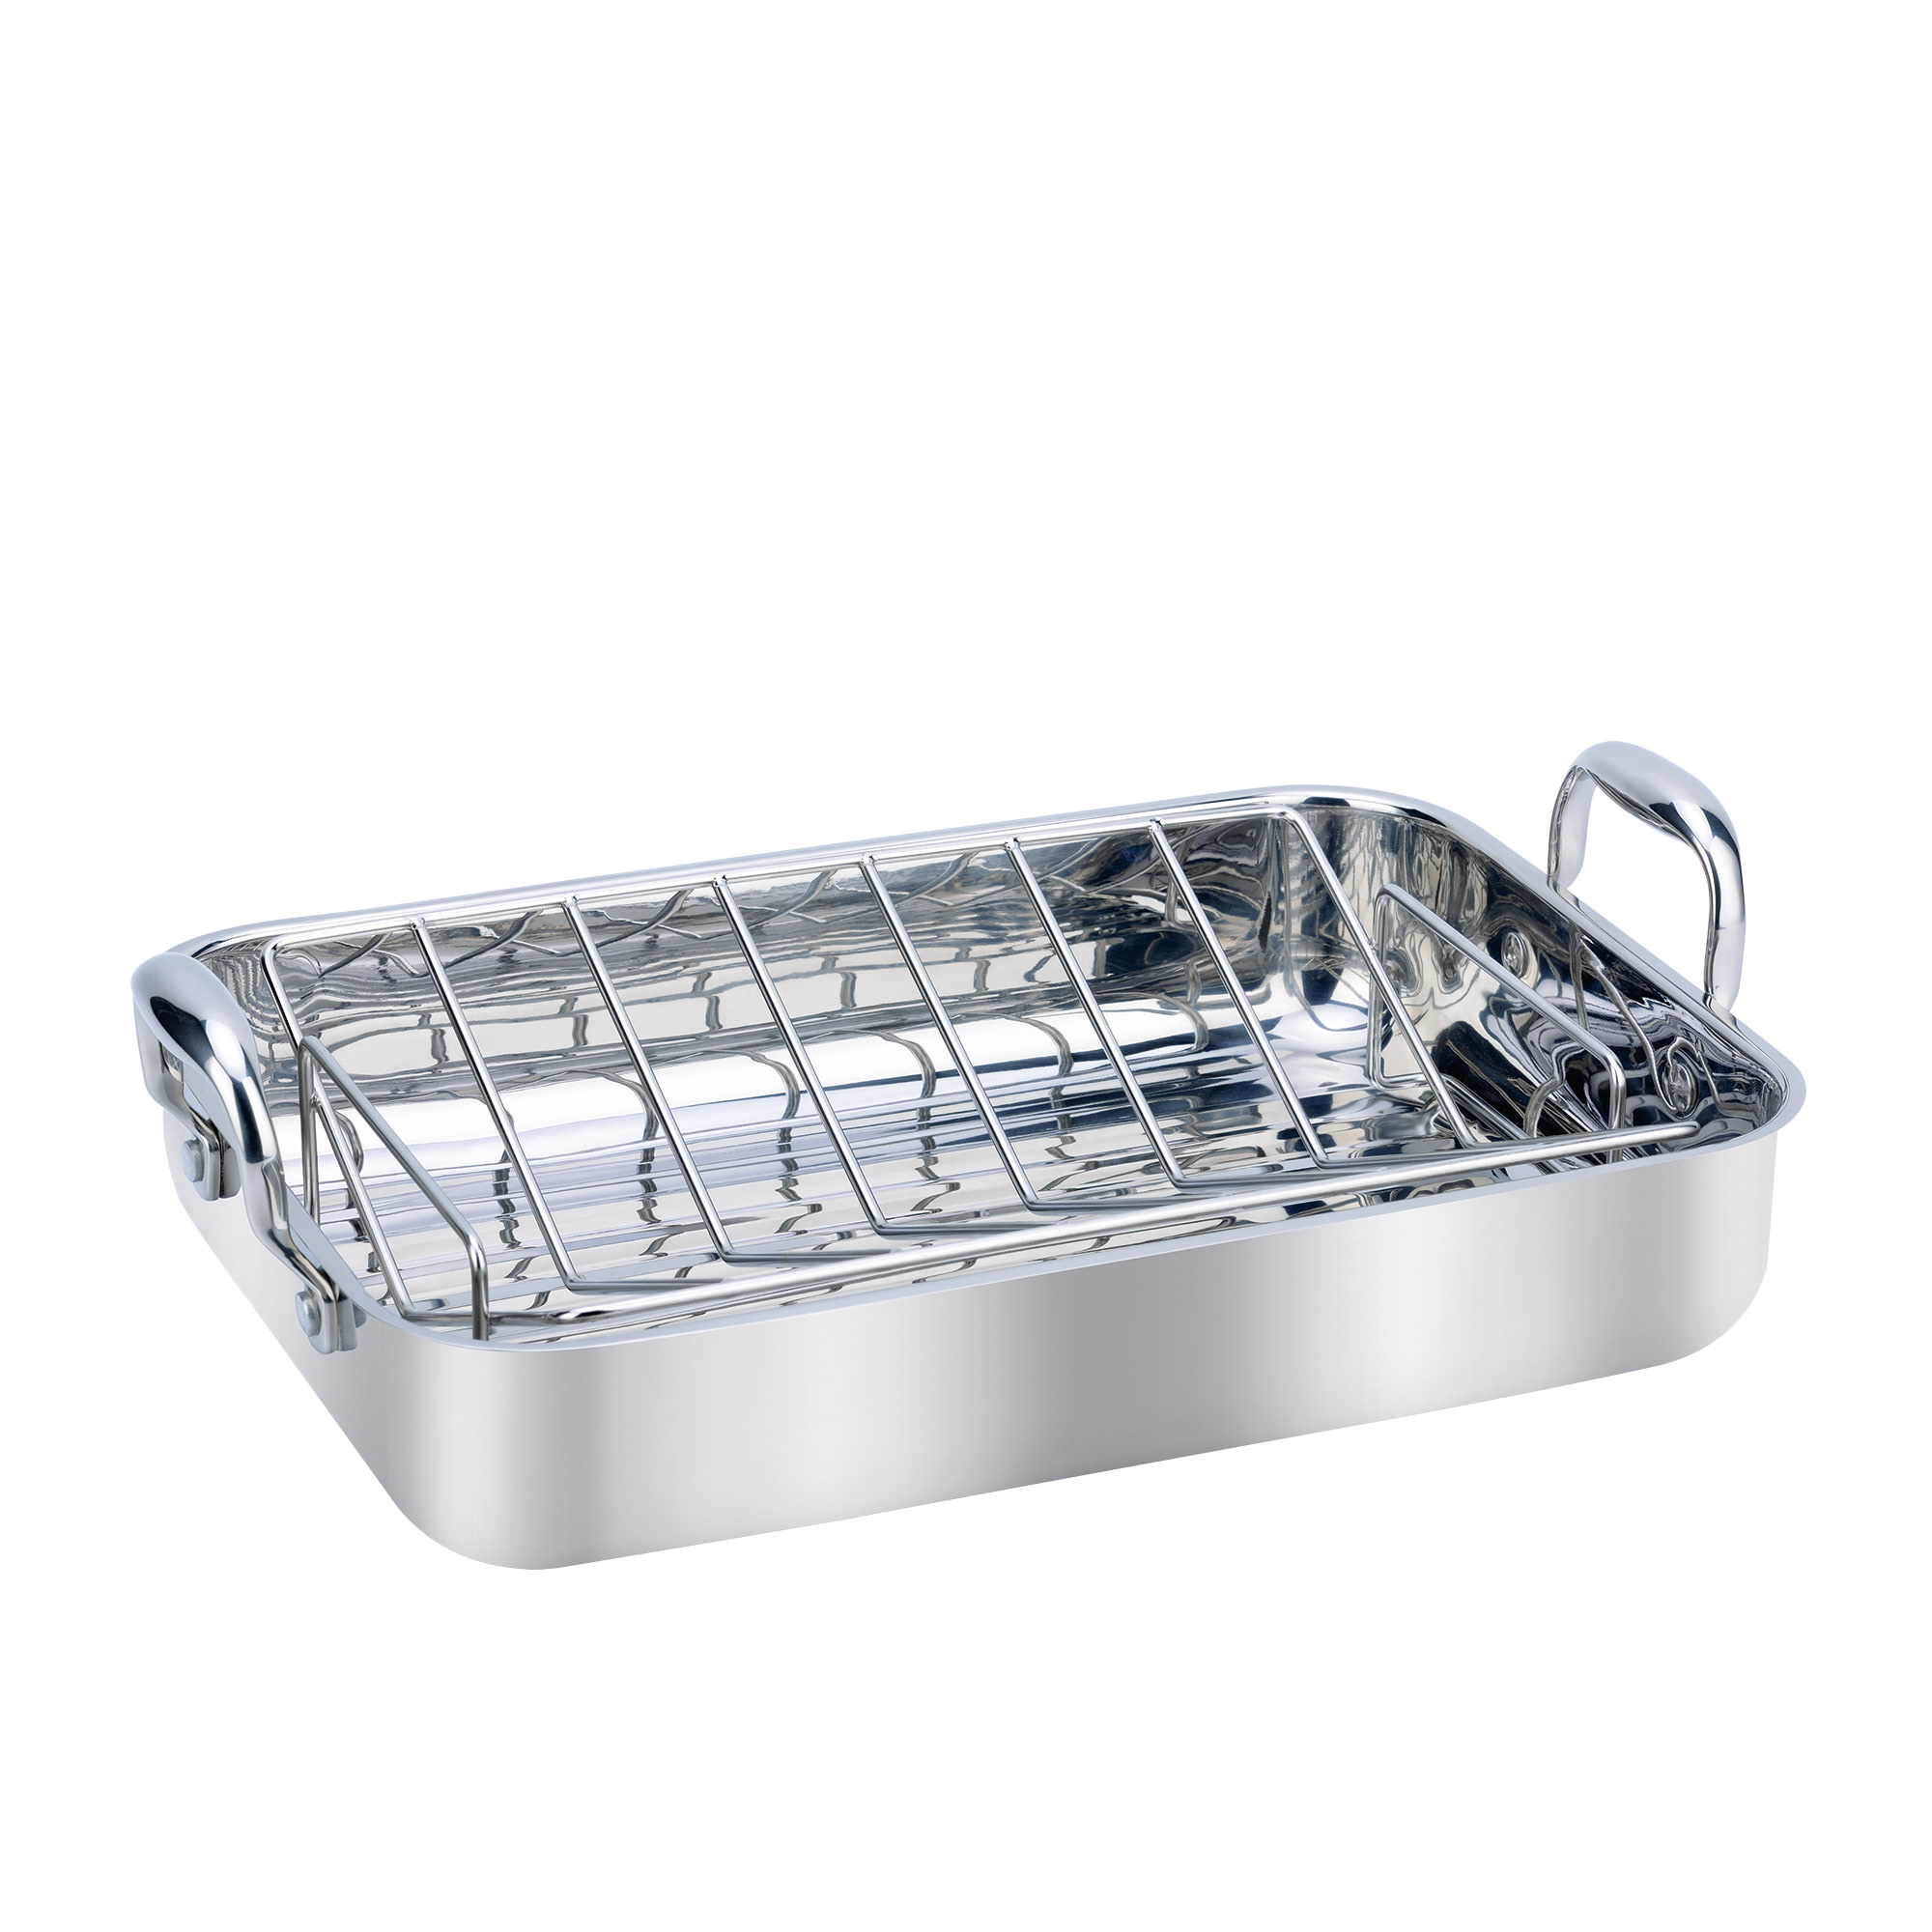 Wolstead Steeltek Stainless Steel Roaster with Rack 36x25cm